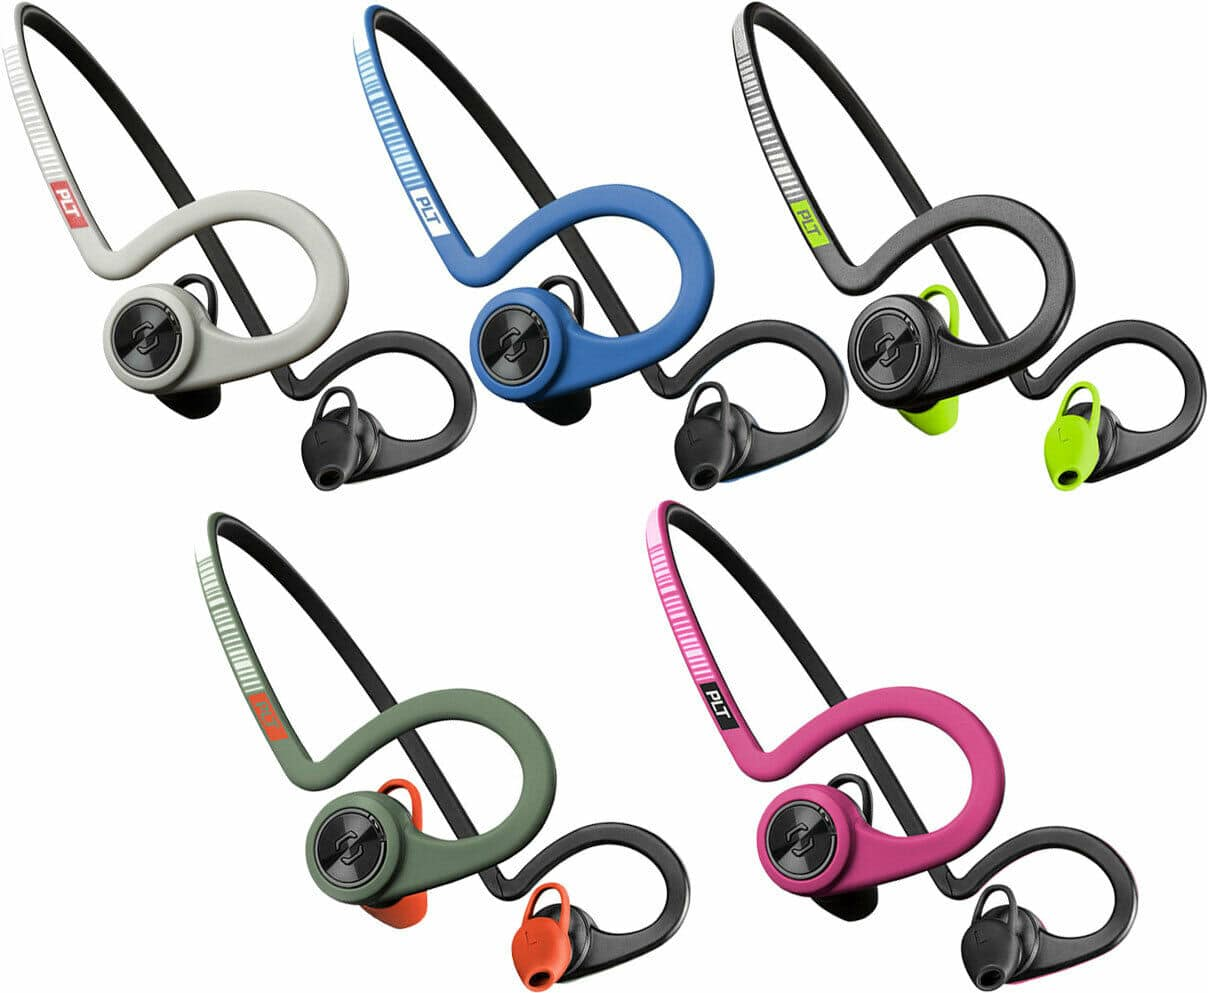 Plantronics BackBeat Fit PLT Version 2 Bluetooth Headphones with Mic (Refurbished) $24.99